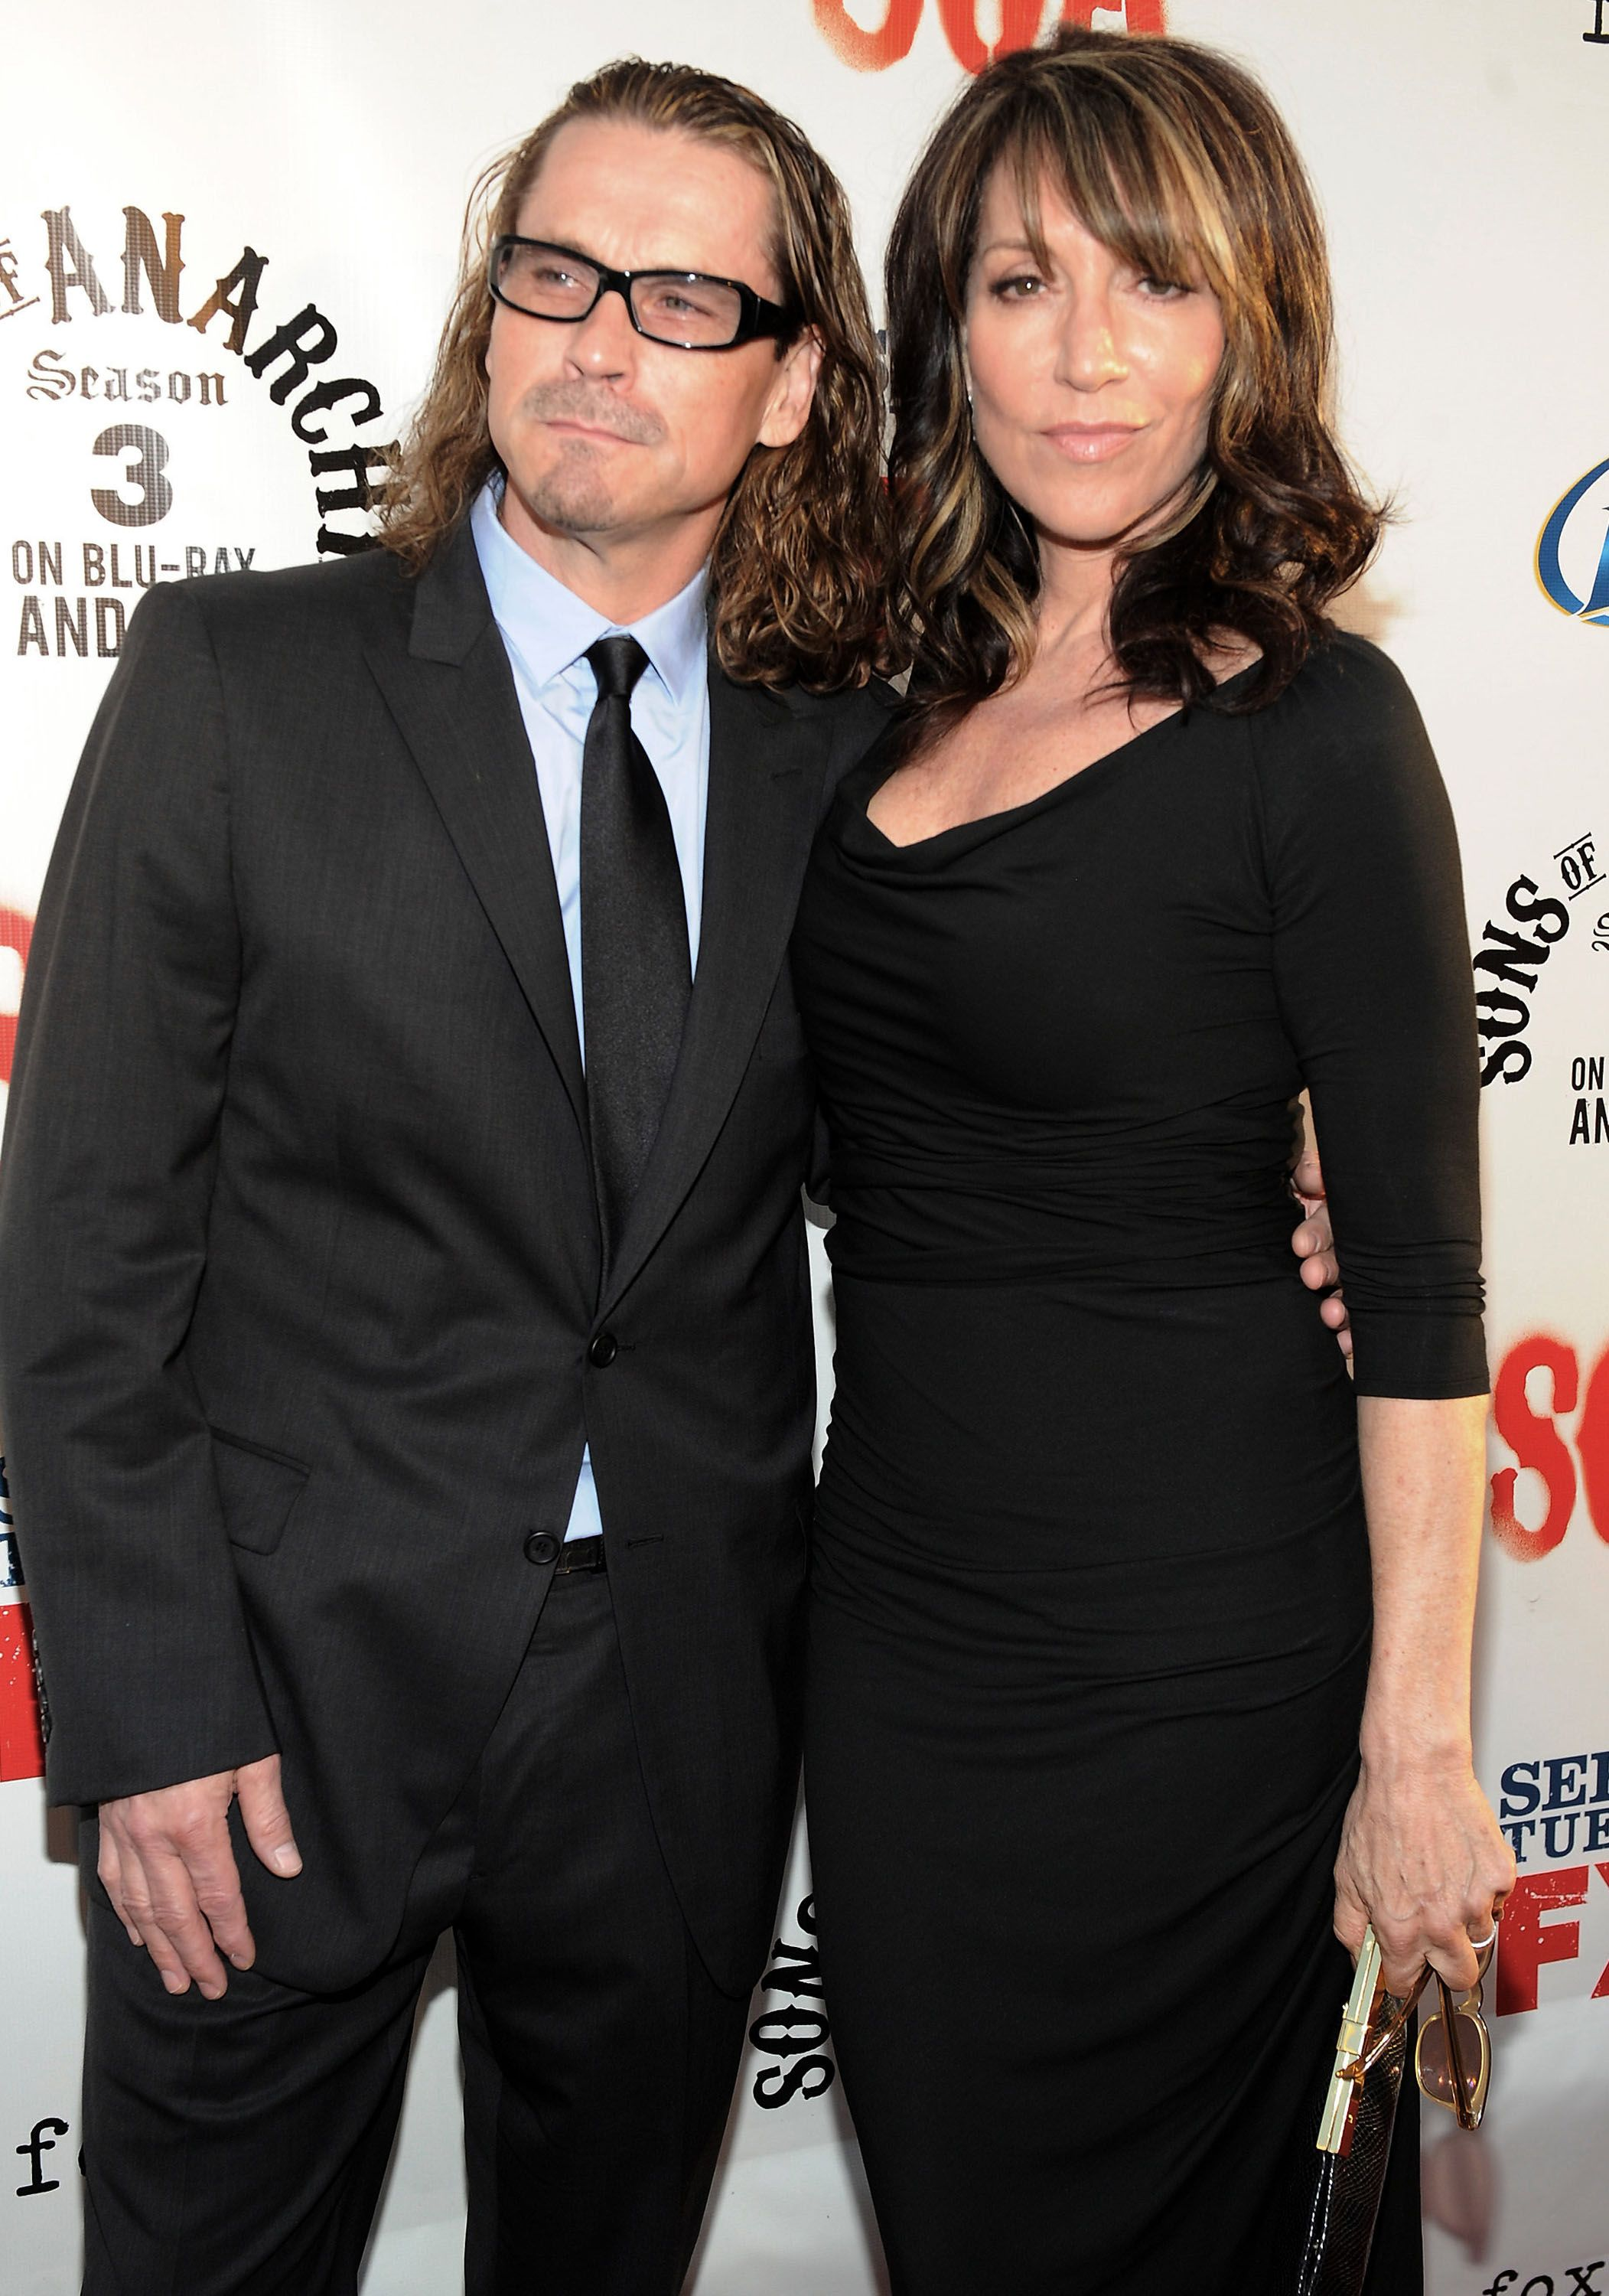 Kurt Sutter and Katey Sagal | Famous Couples | Pinterest ...